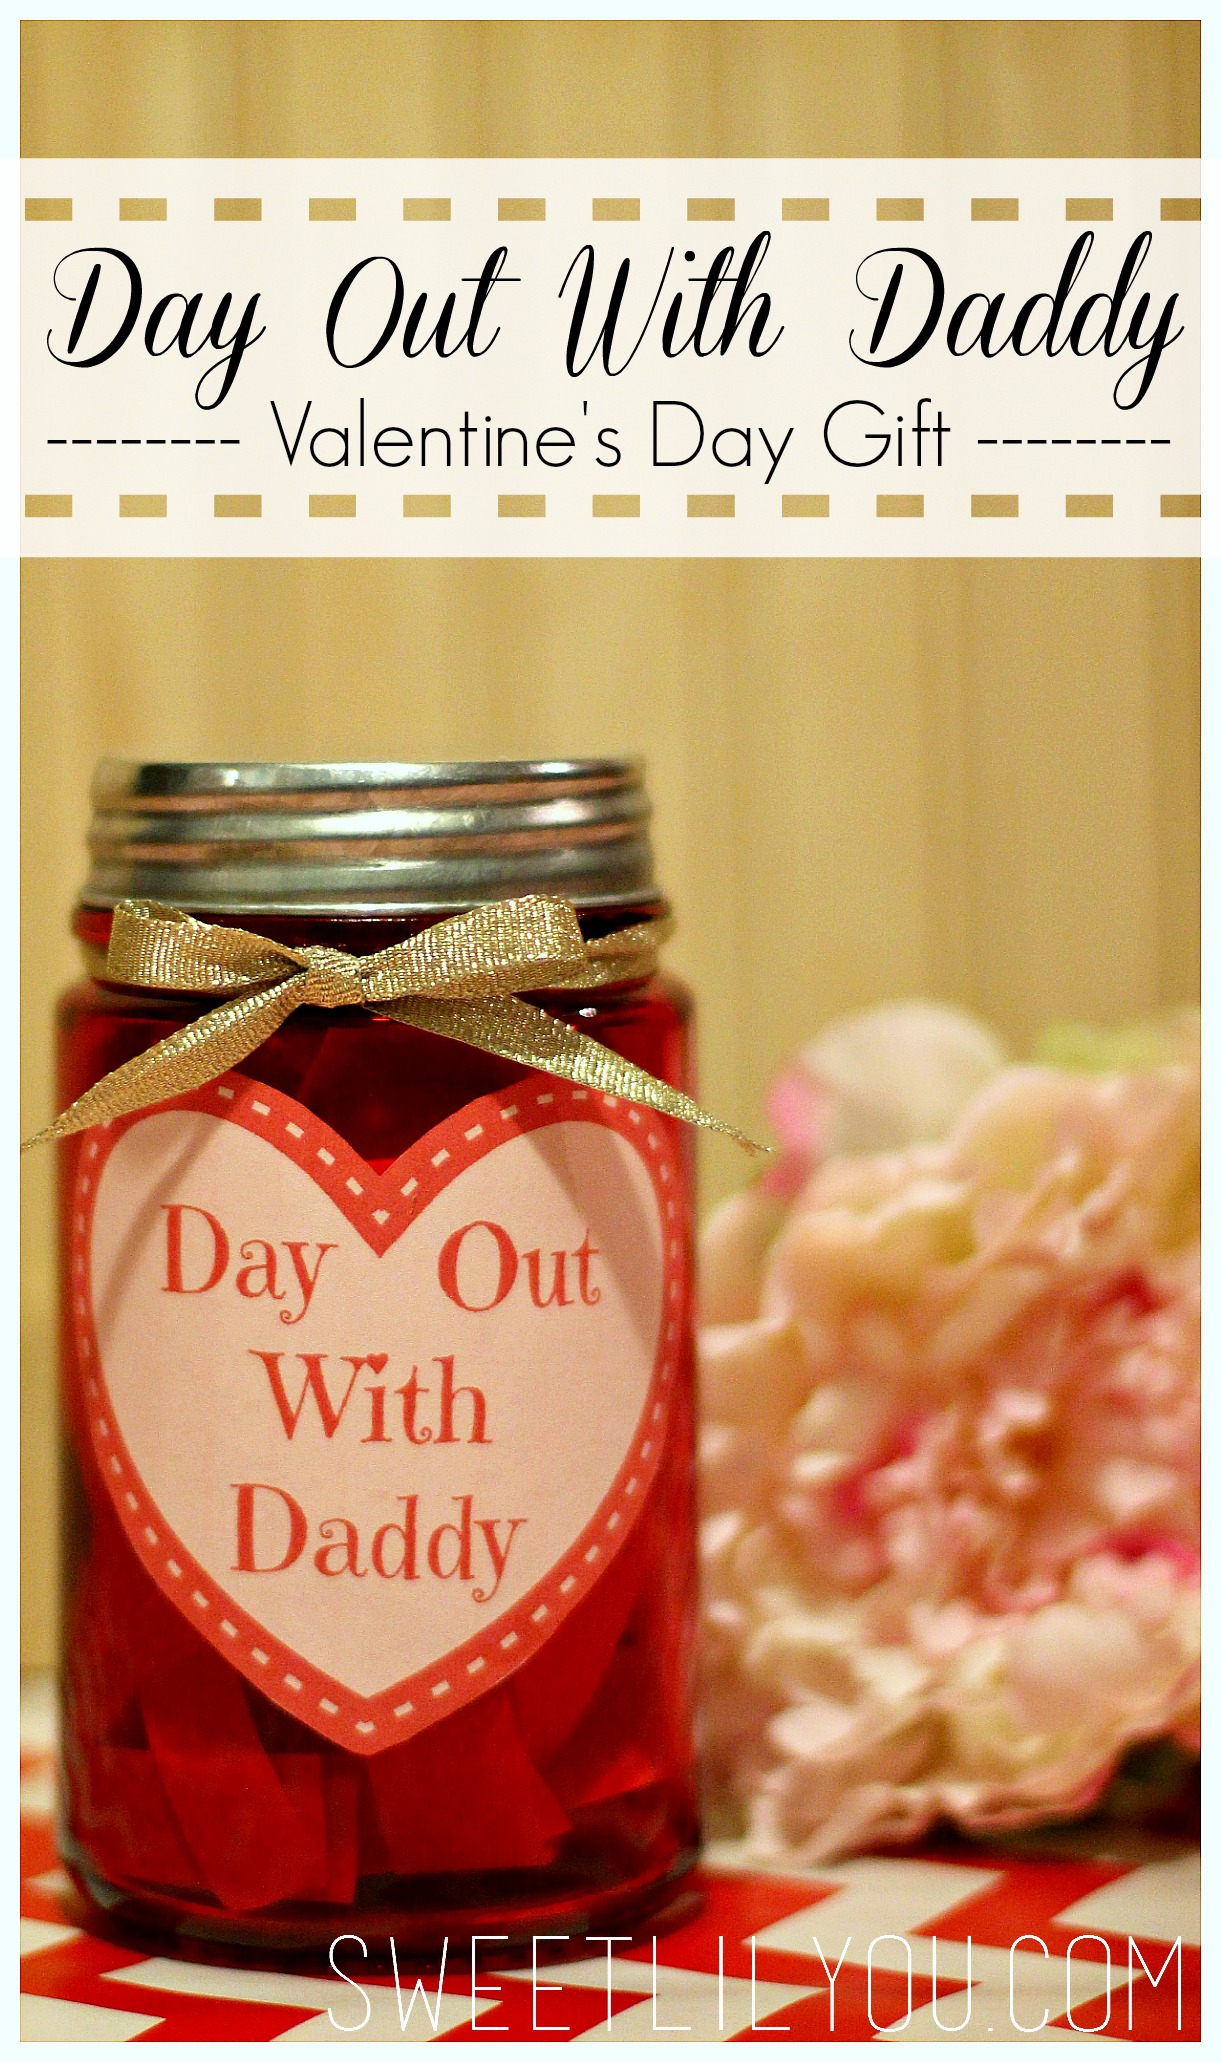 Day Out With Daddy Jar - Valentine's Day Gift for Dad - sweet lil you